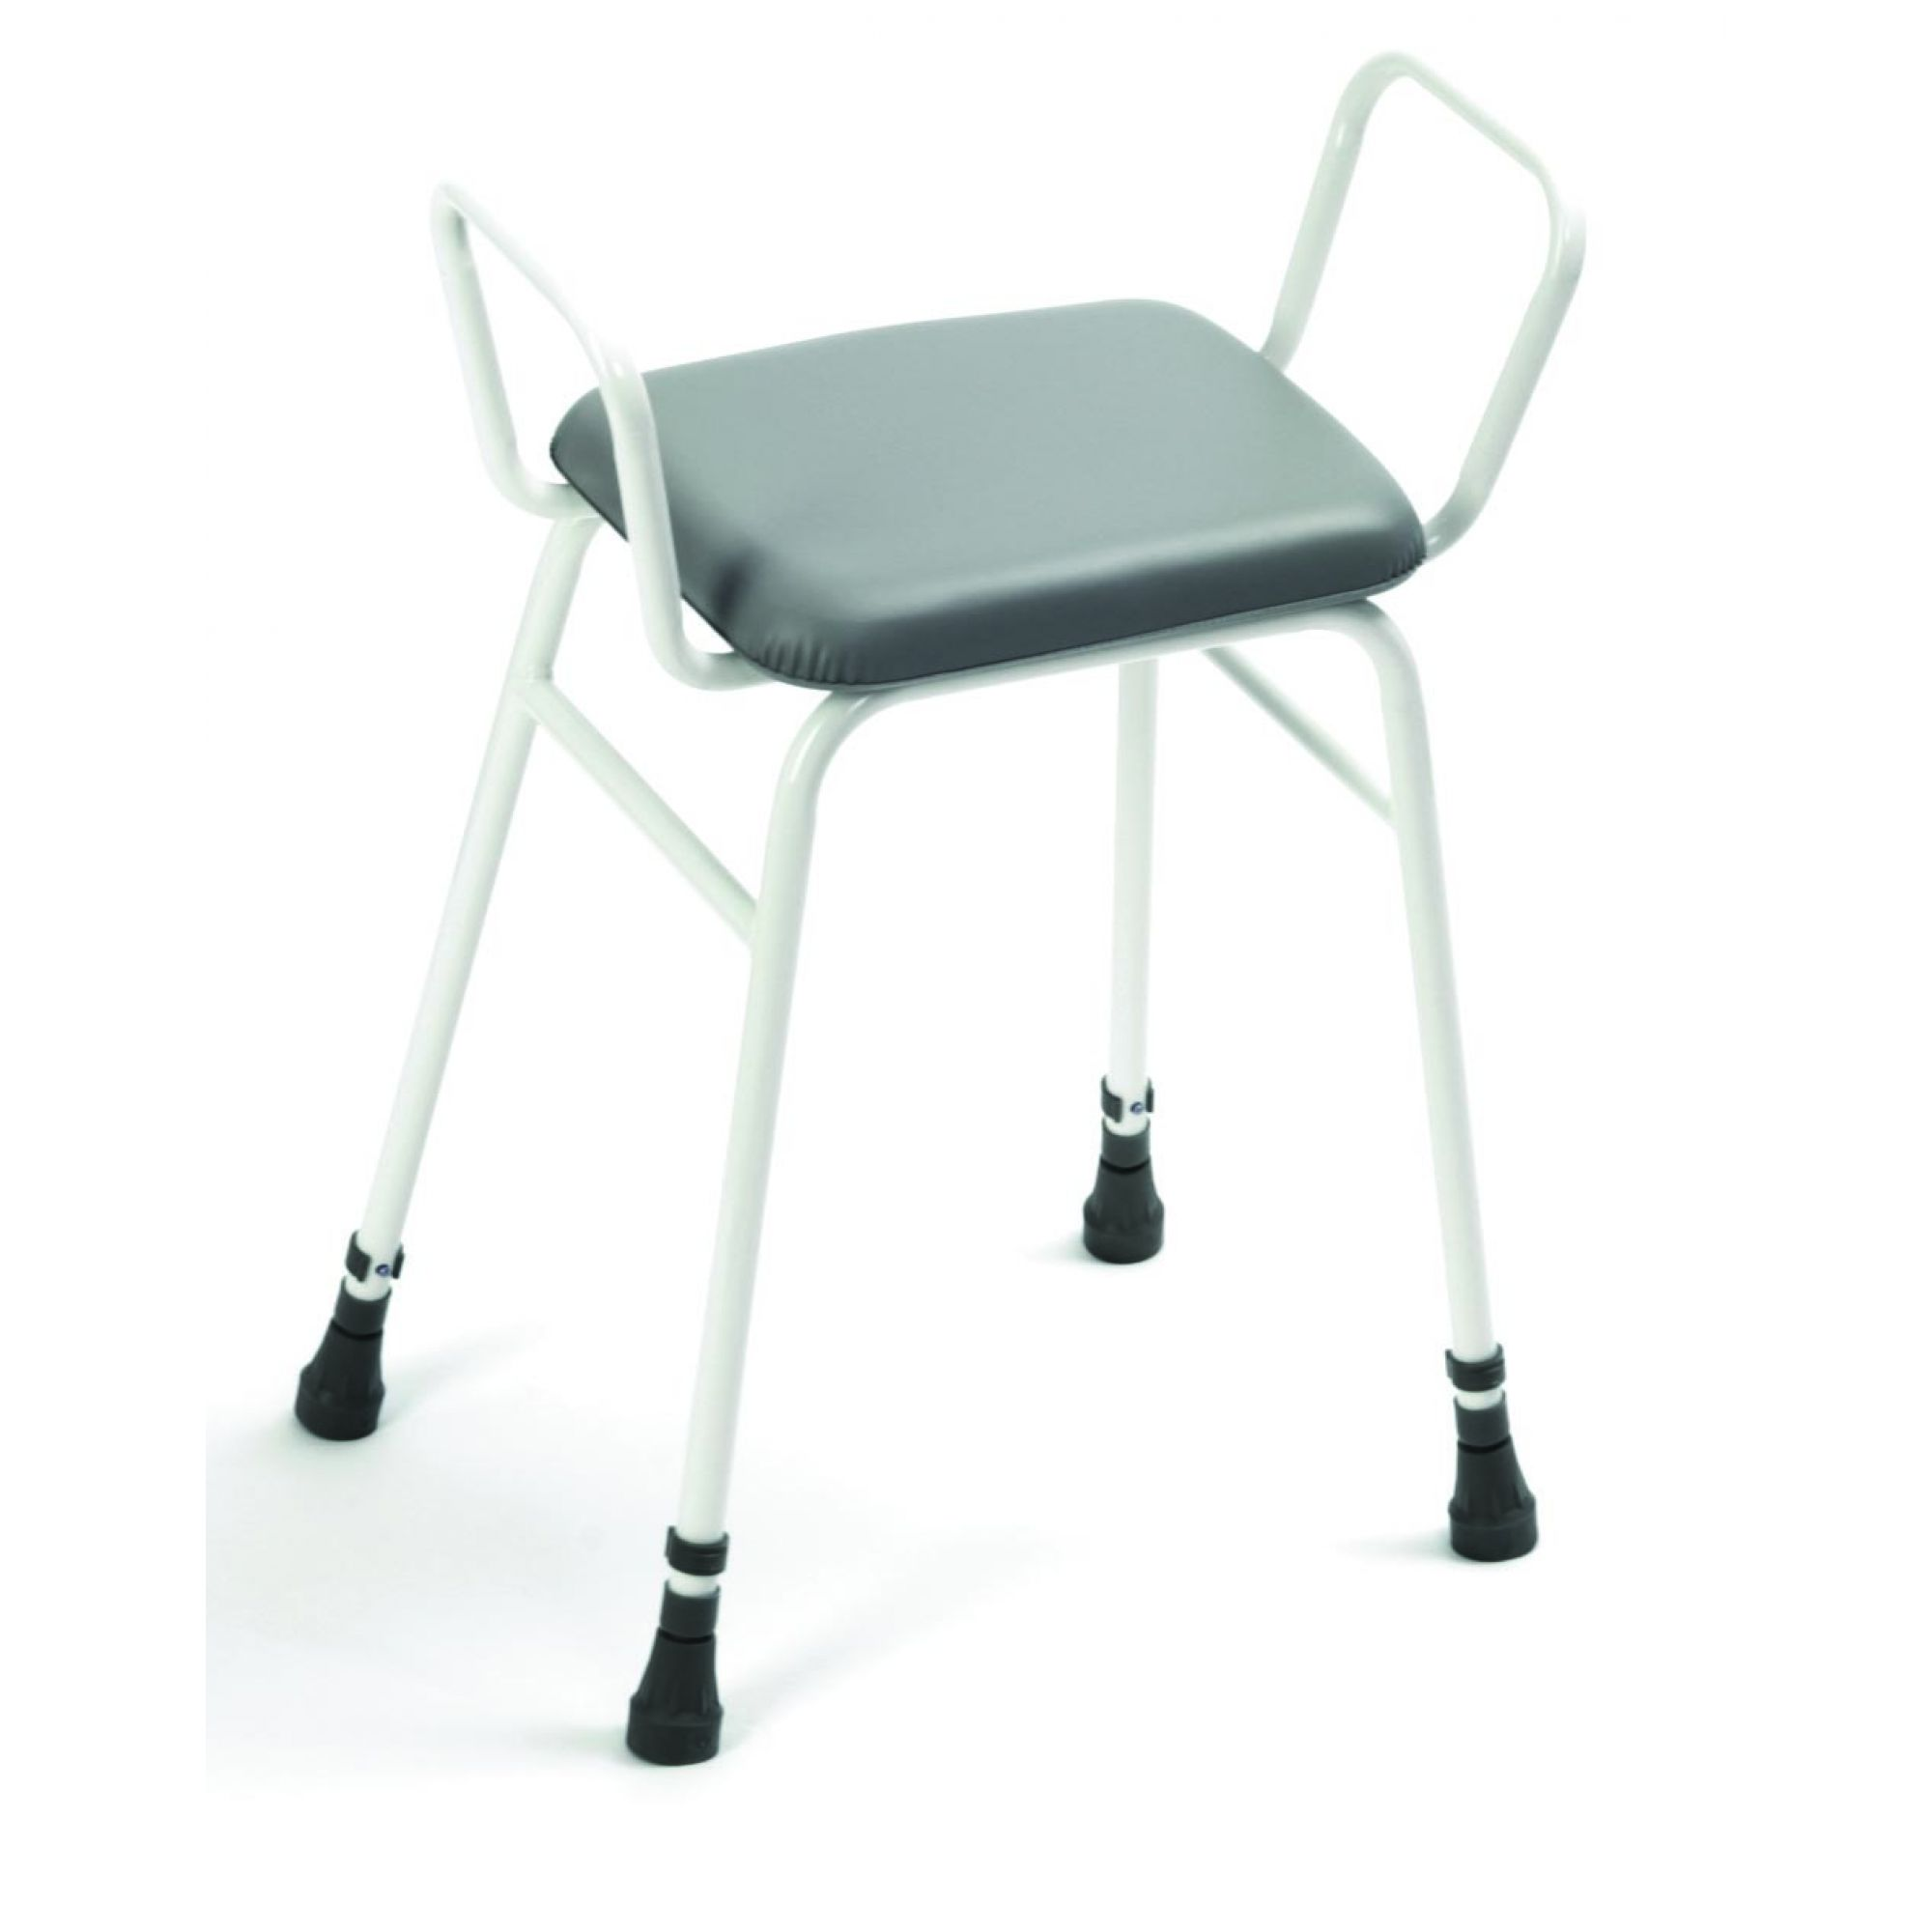 Perching Stool Poole Mobility